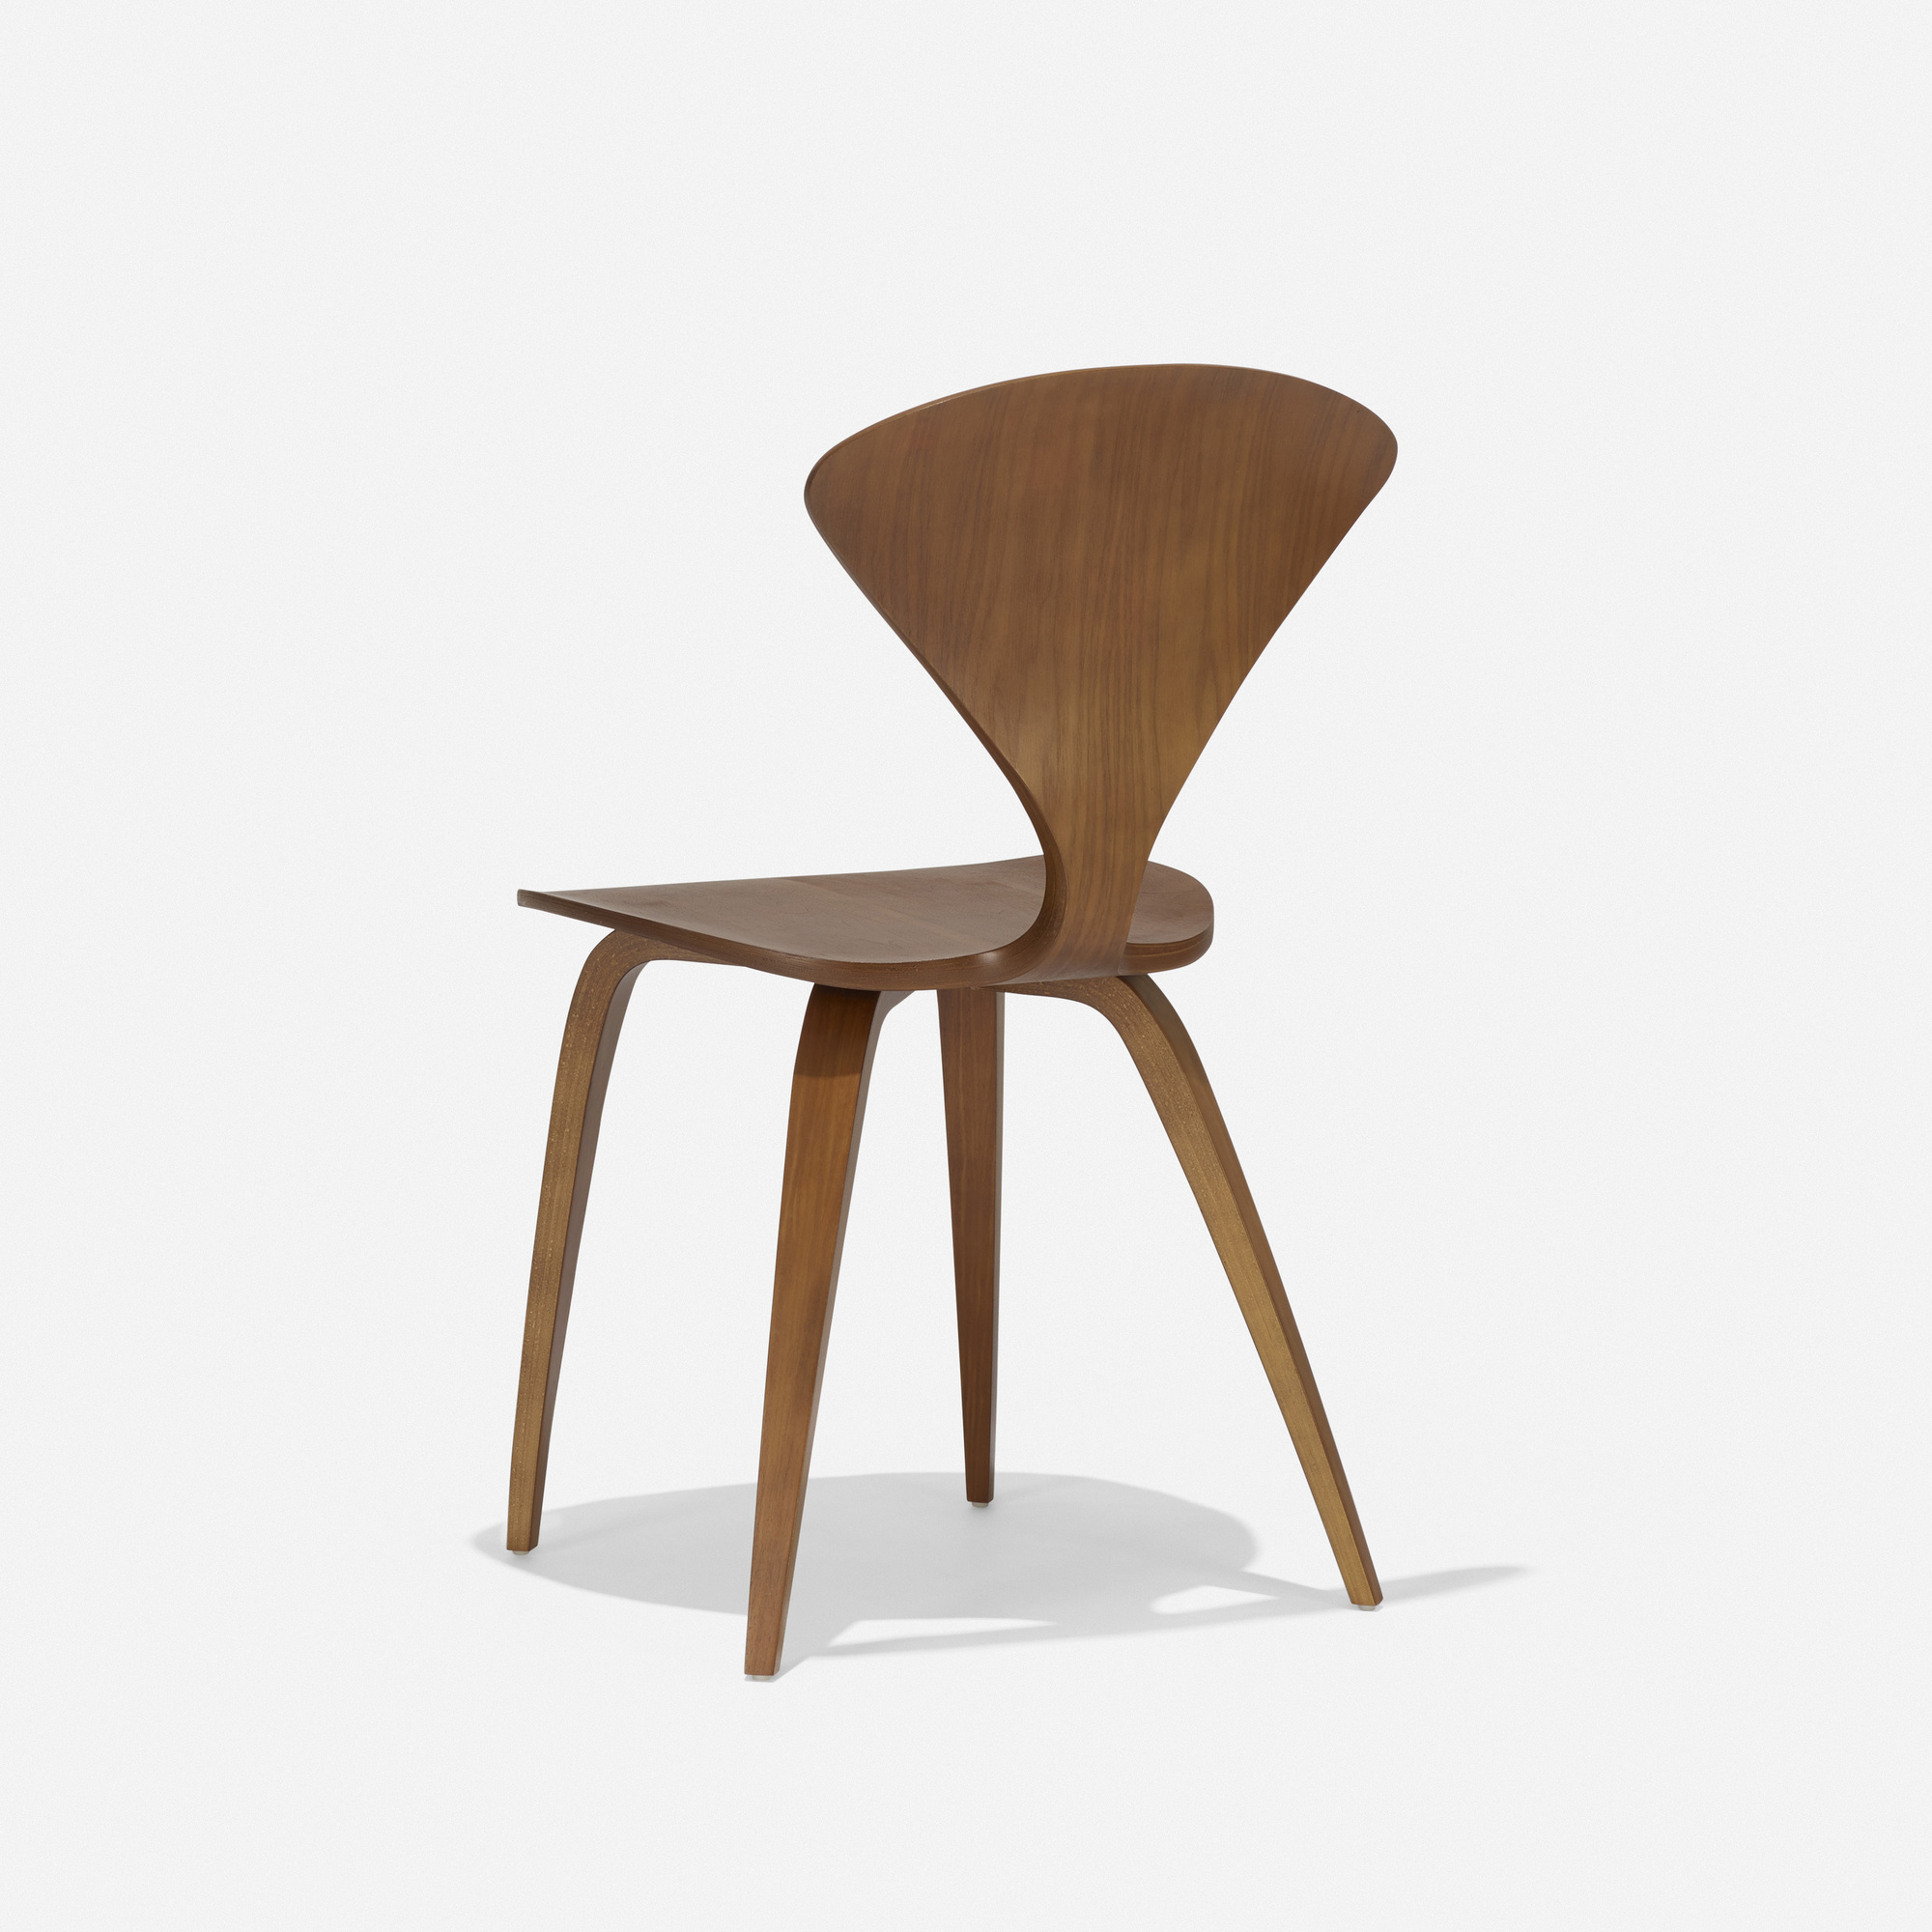 198 Norman Cherner chair Mass Modern Day 1 10 August 2017